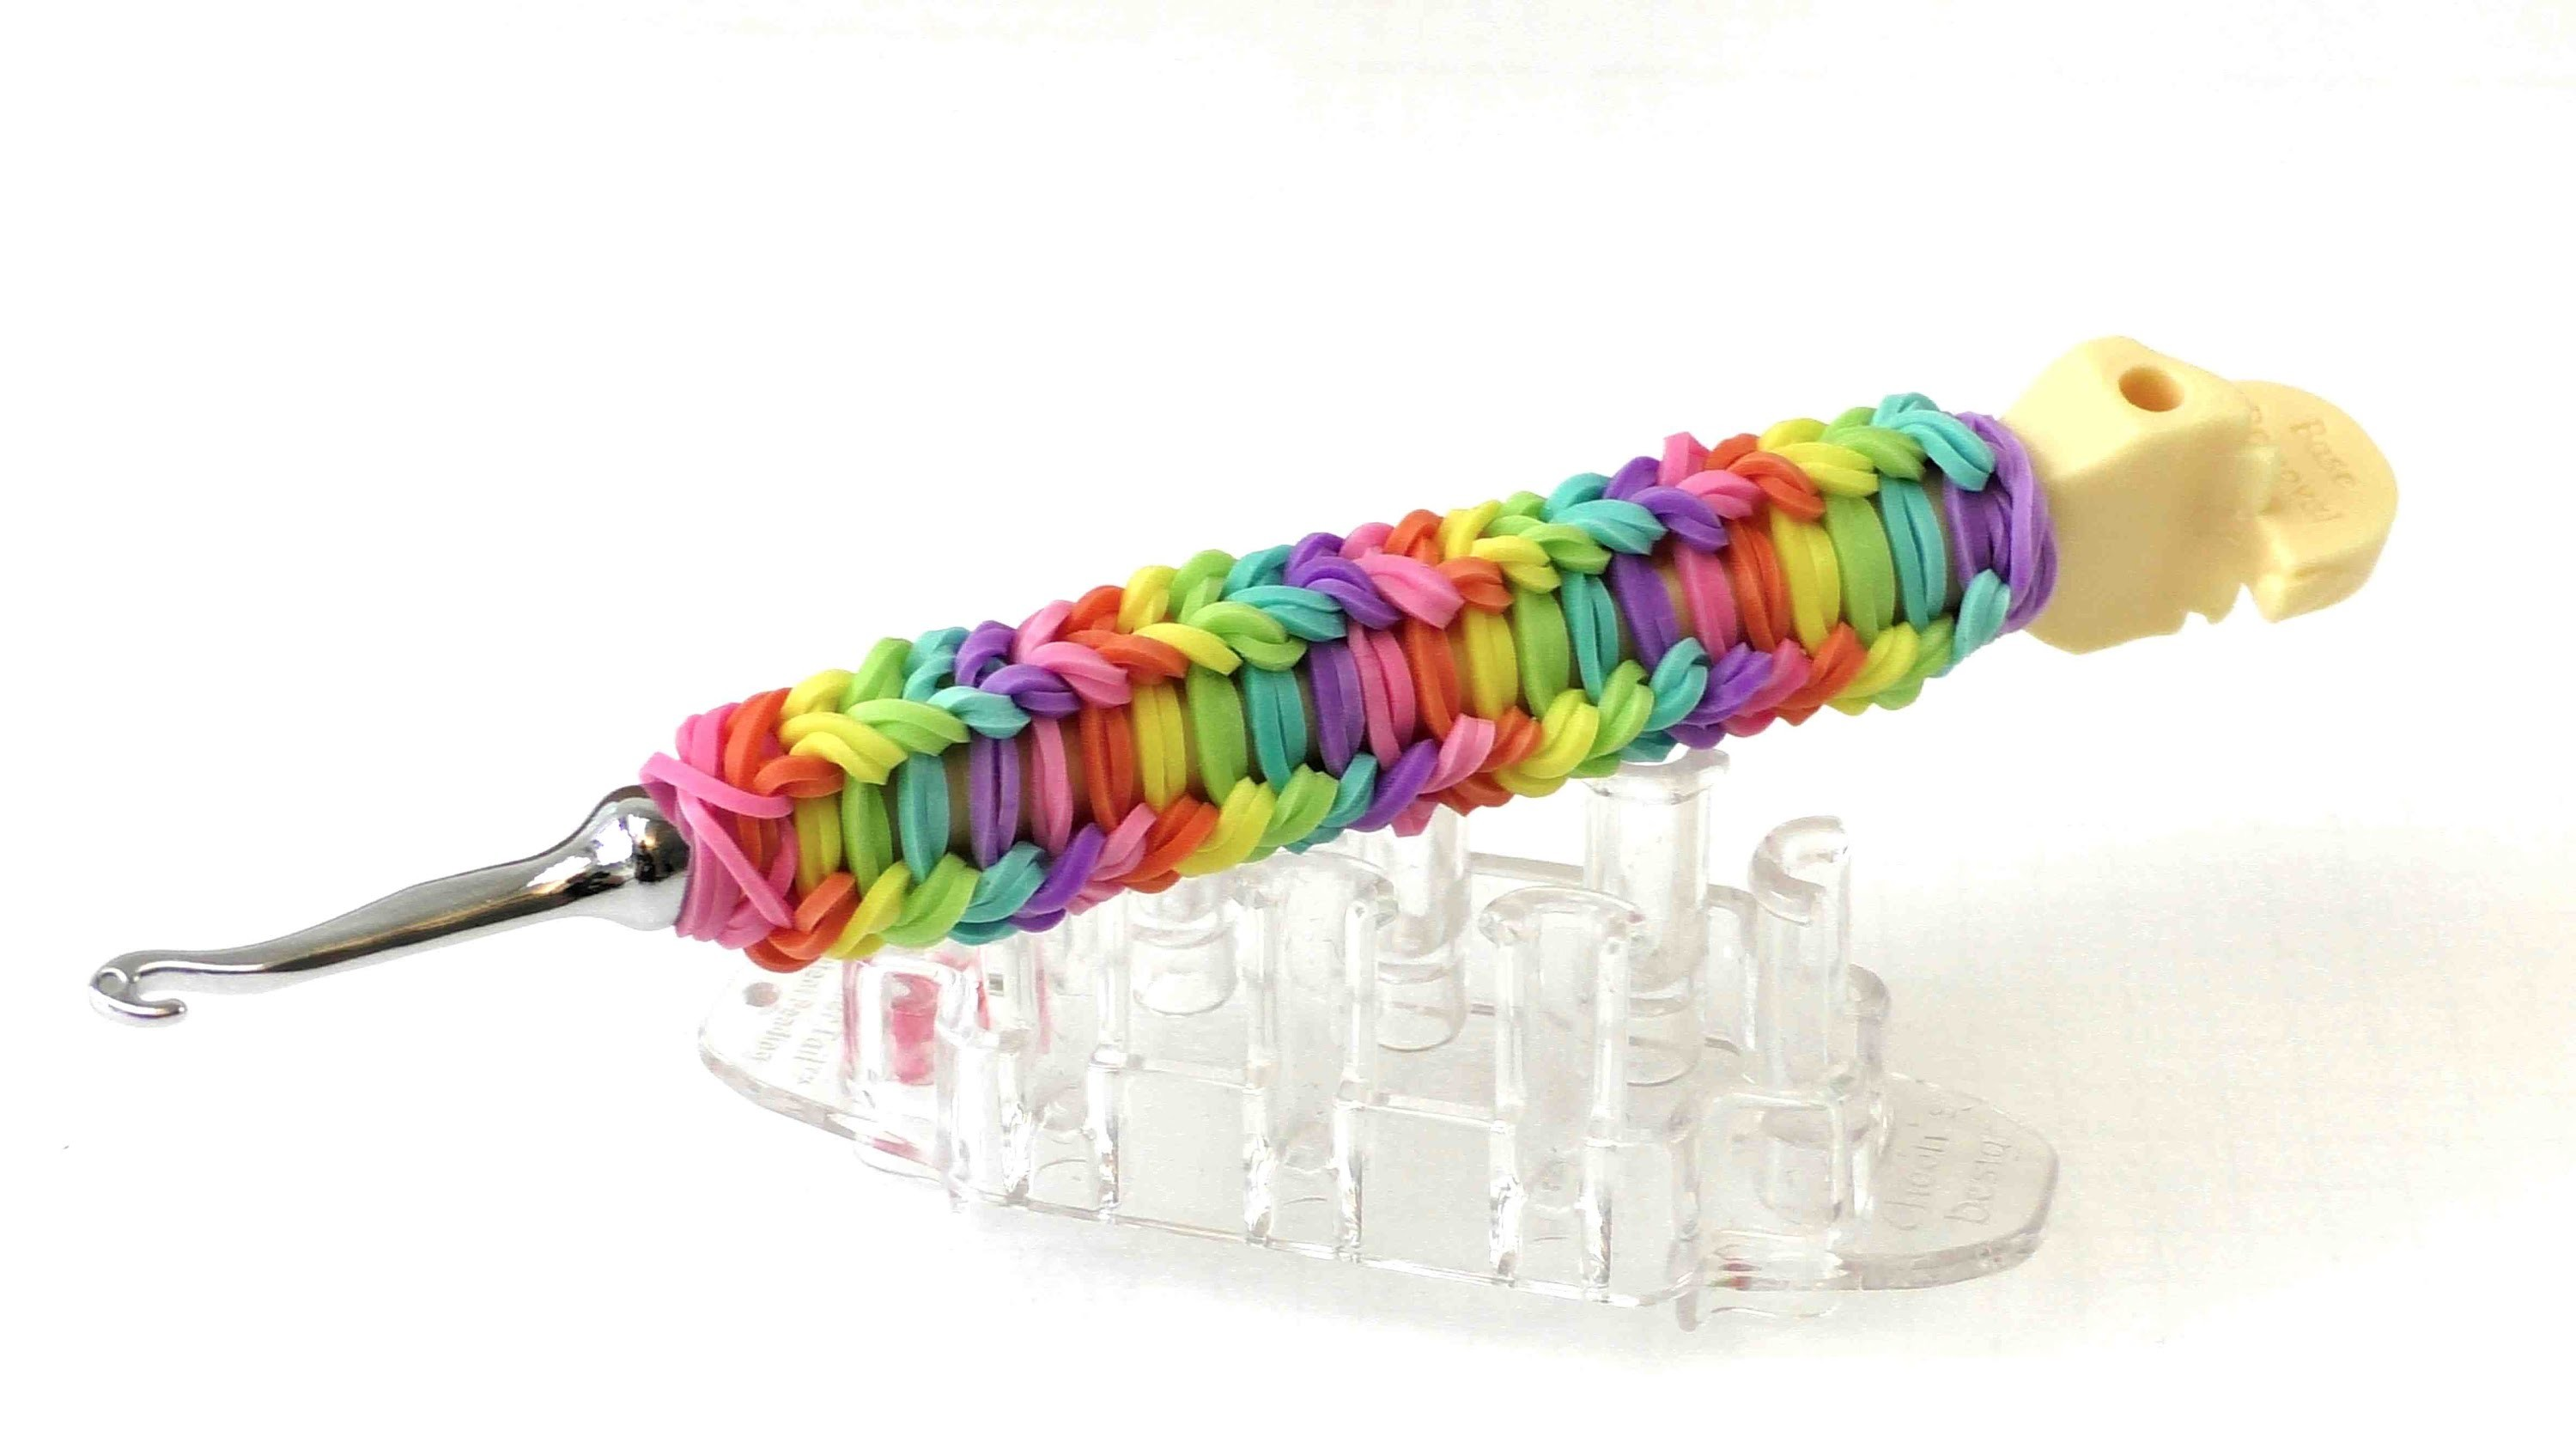 Rainbow Loom Anleitung deutsch Haken umloomen Tutorial - original Rainbow Loom Haken